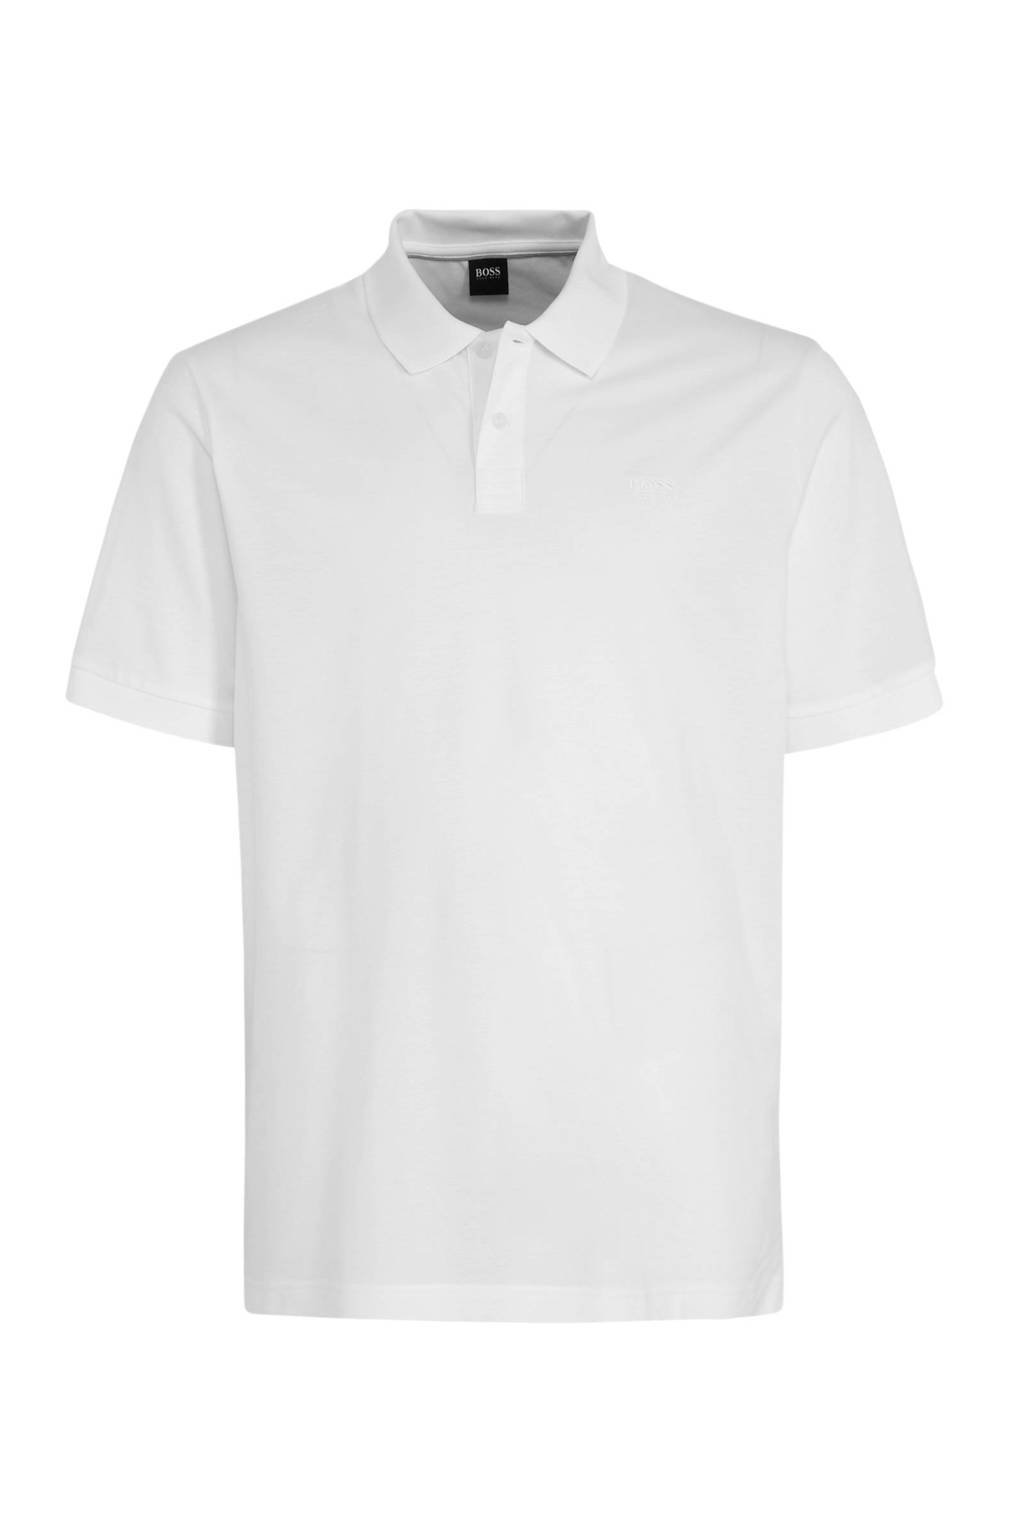 BOSS regular fit polo met logo wit, Wit